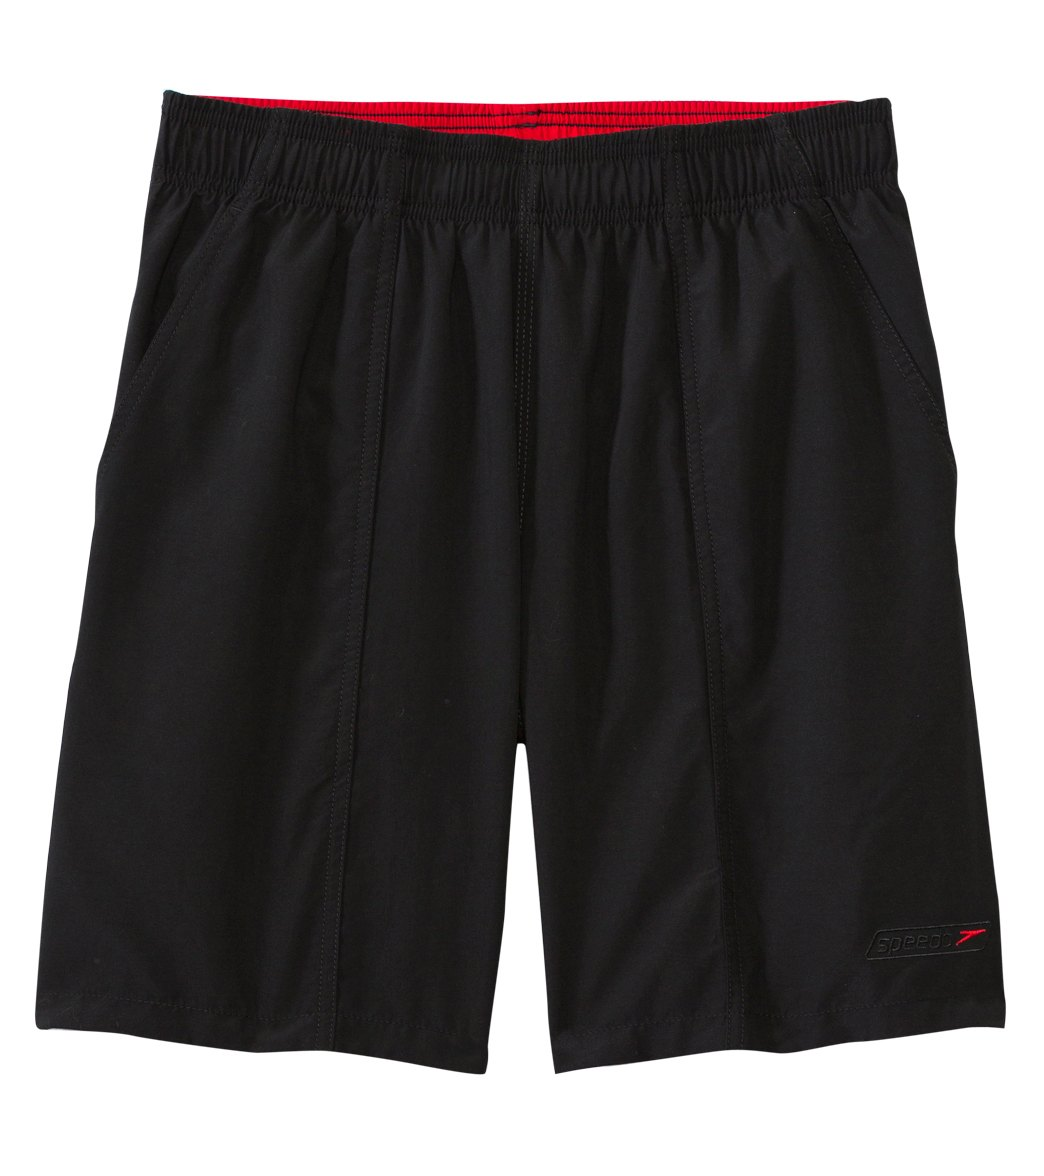 43cb38f30e Speedo Men's Rally Volley Short at SwimOutlet.com